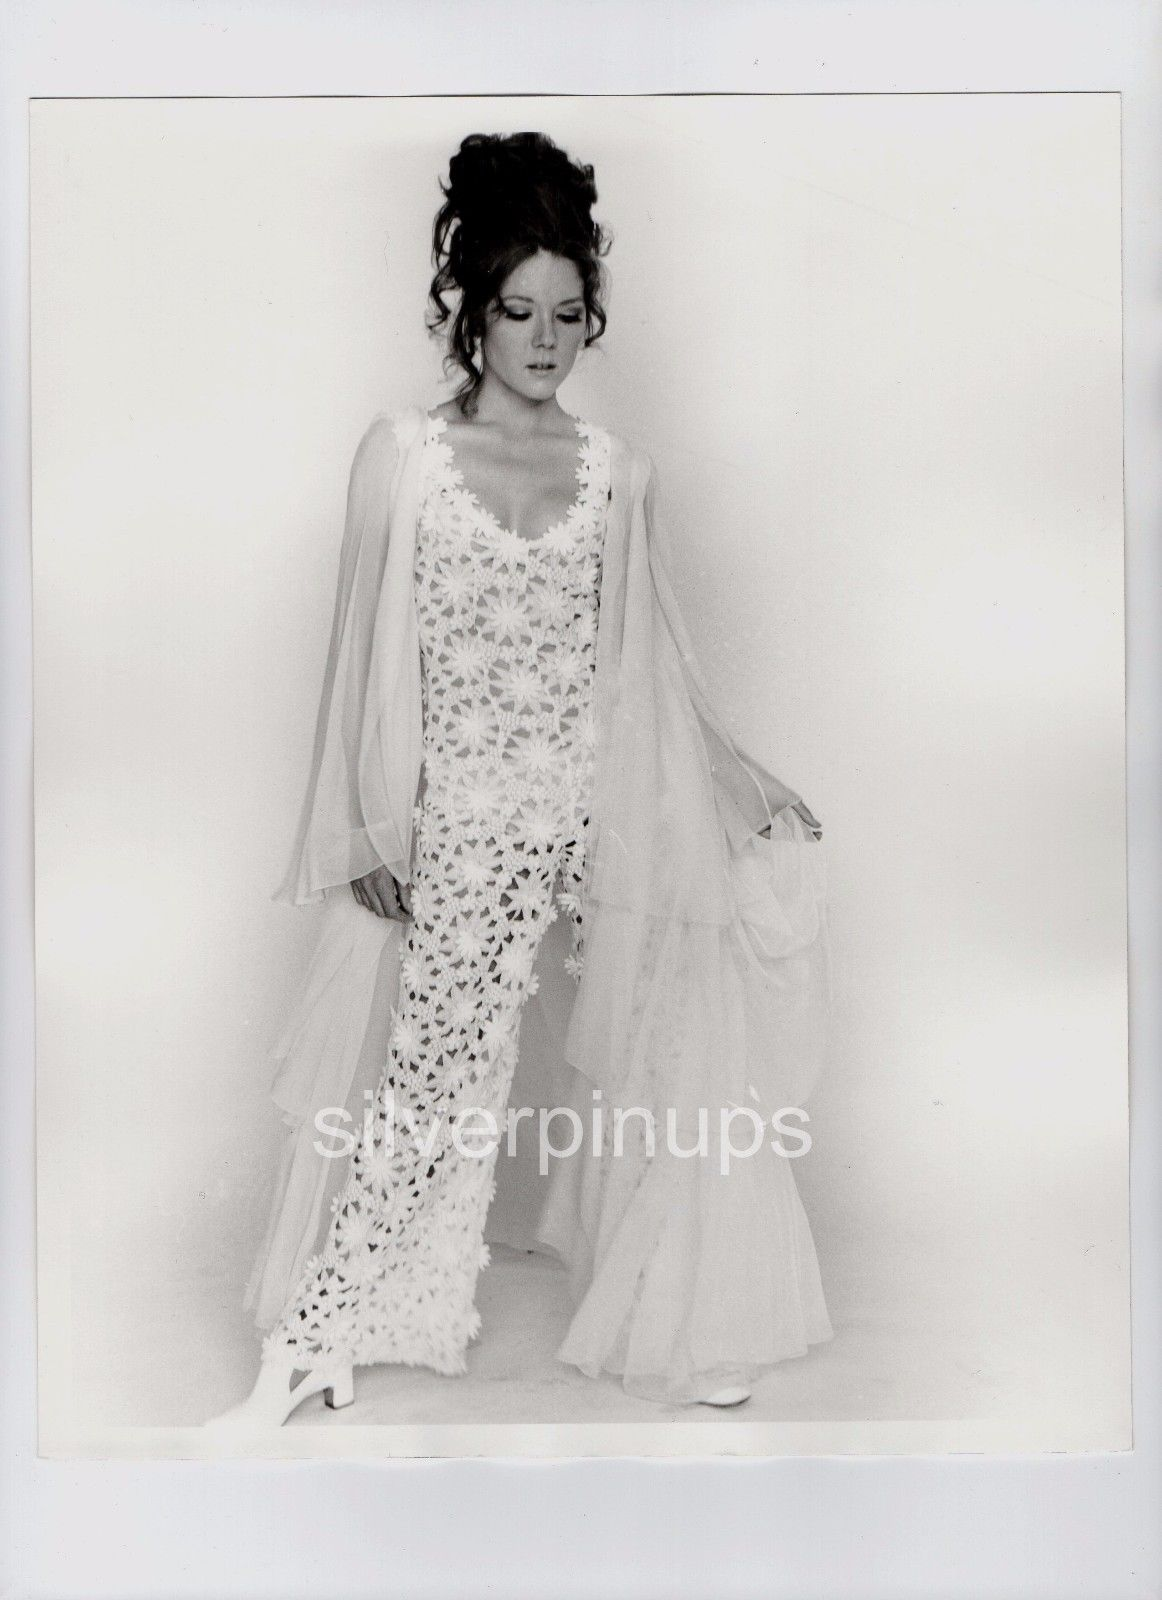 orig 1969 james bond diana rigg costume test wedding dress o h m s s silverpinups orig 1969 james bond diana rigg costume test wedding dress o h m s s